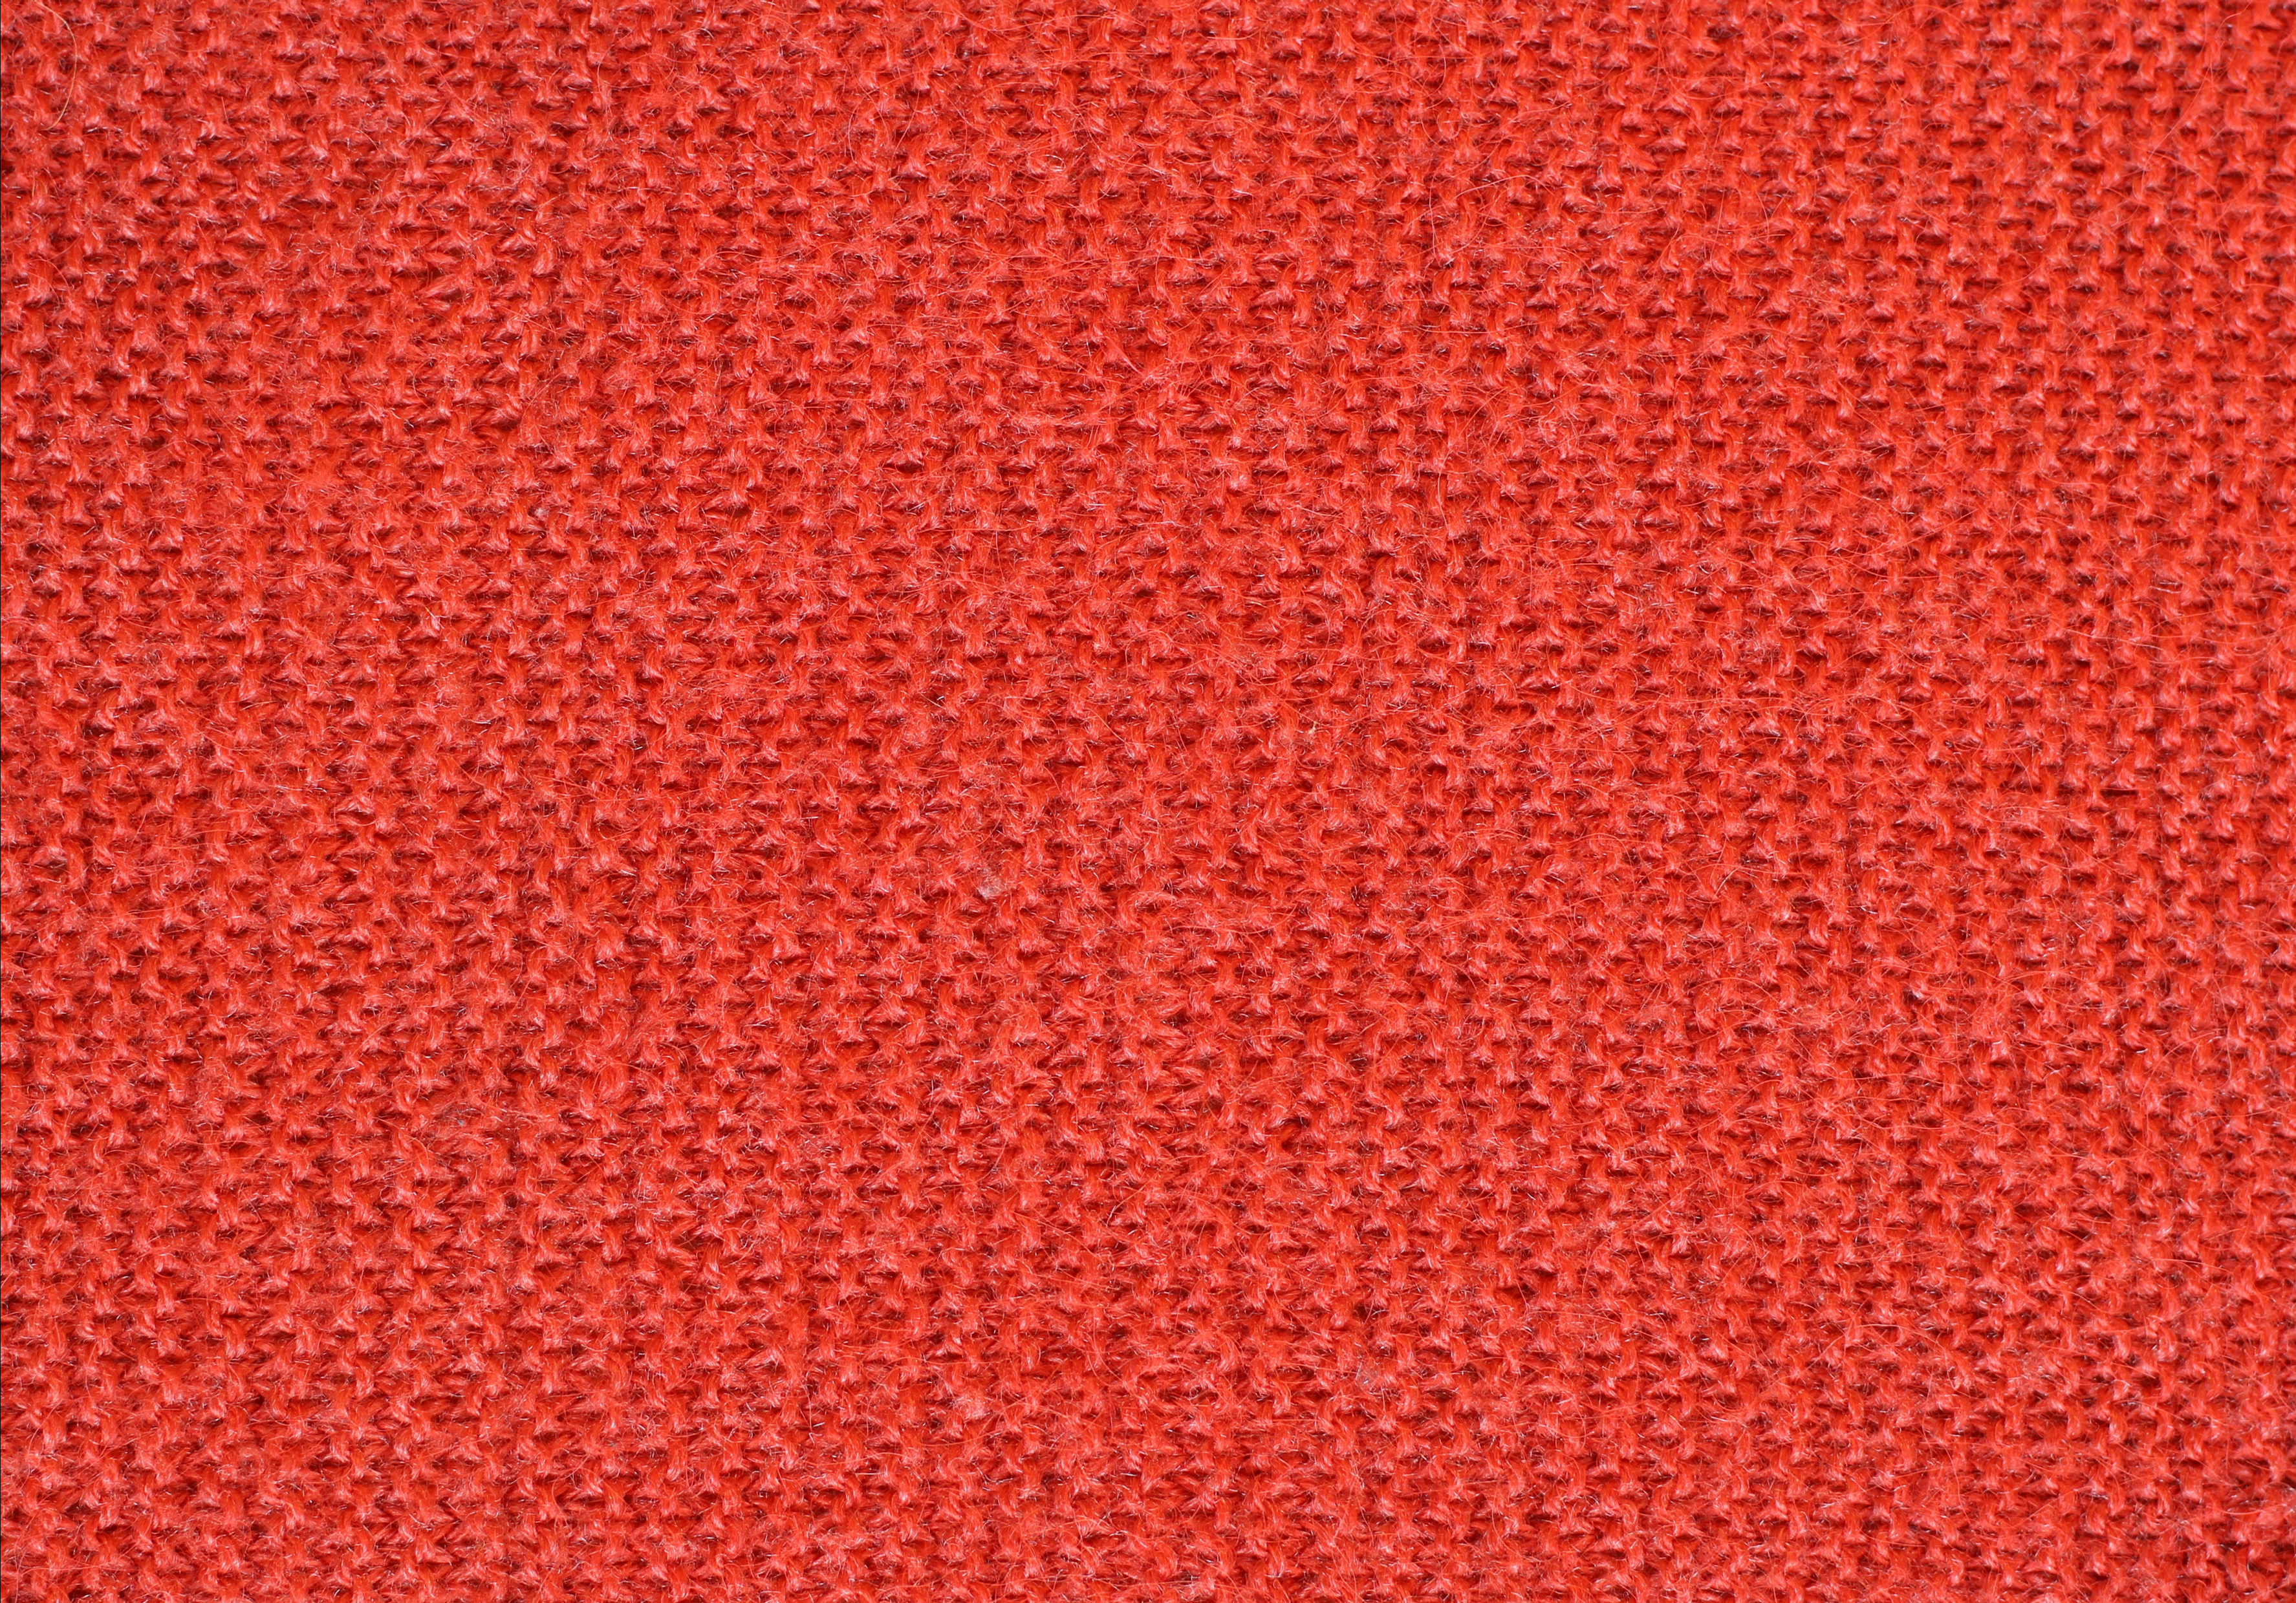 Red knitted wool texture background image